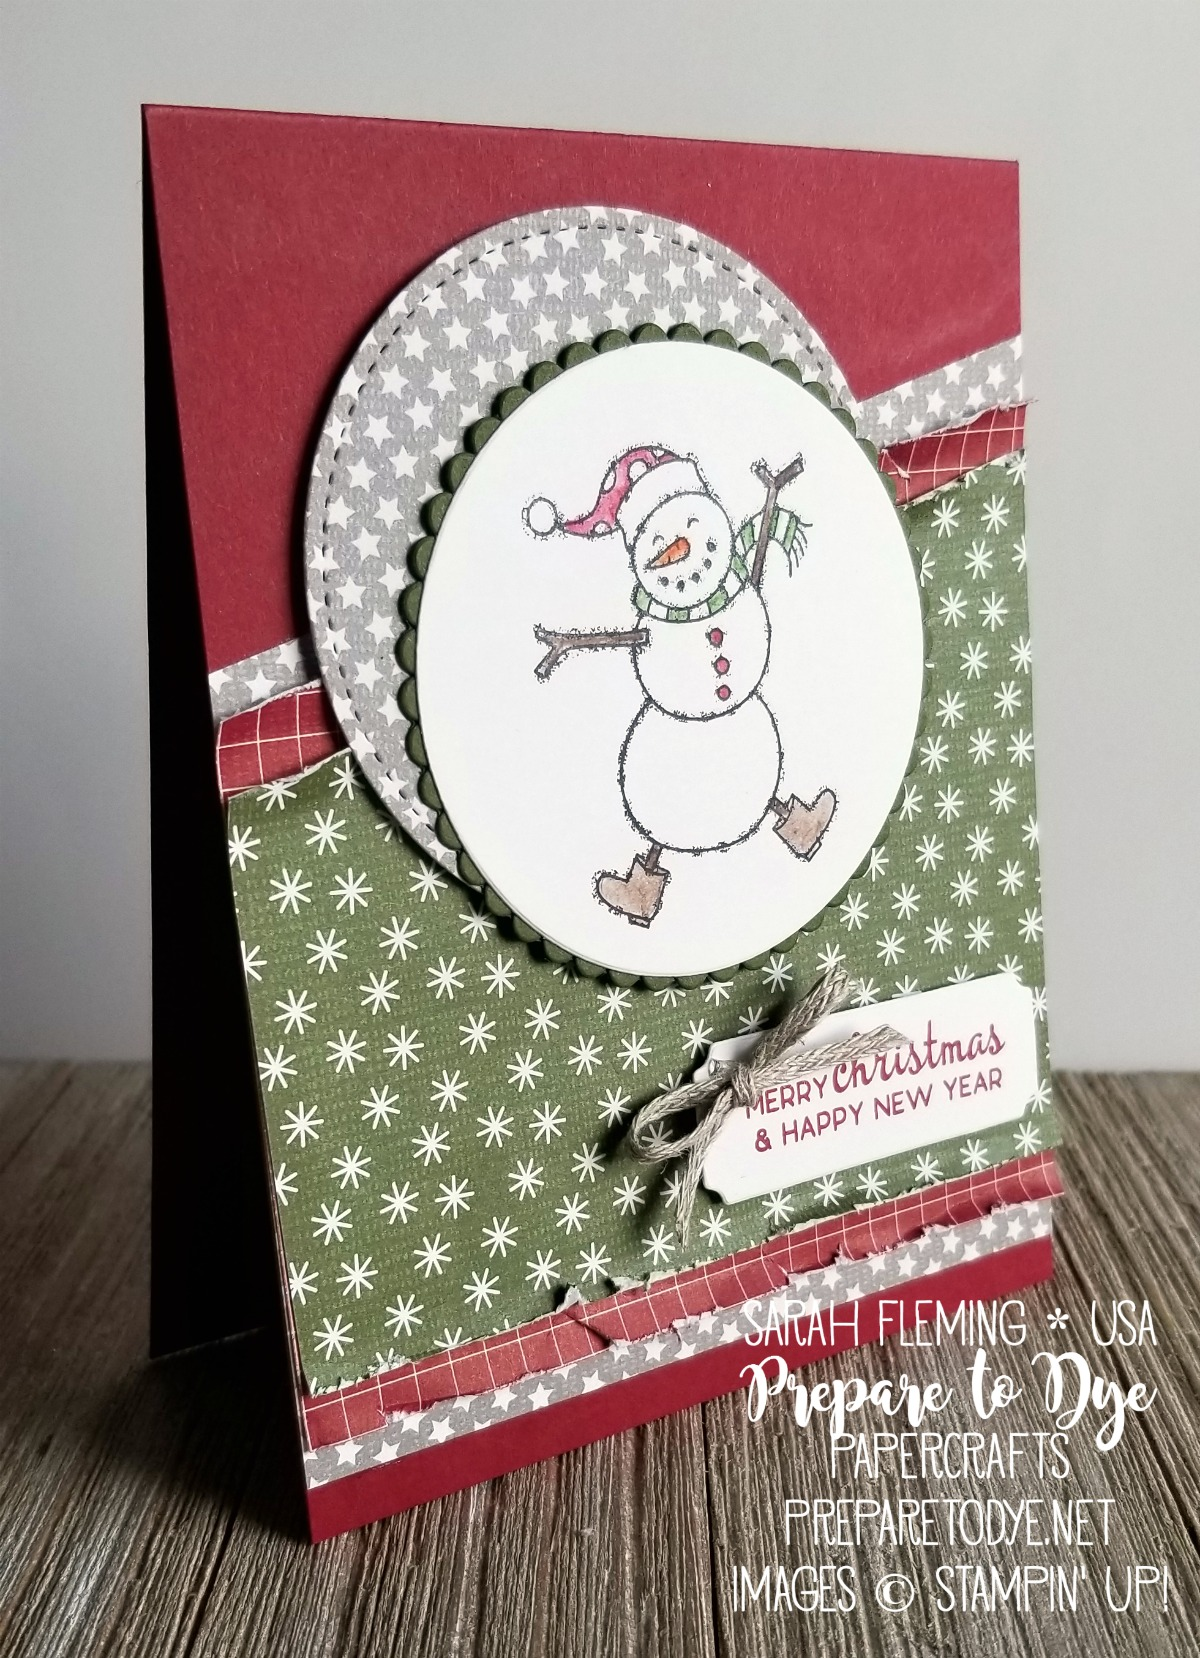 Stampin' Up! Spirited Snowmen with Beautiful Baubles sentiment and Festive Farmhouse paper - handmade vintage Christmas card - Sarah Fleming - Prepare to Dye Papercrafts